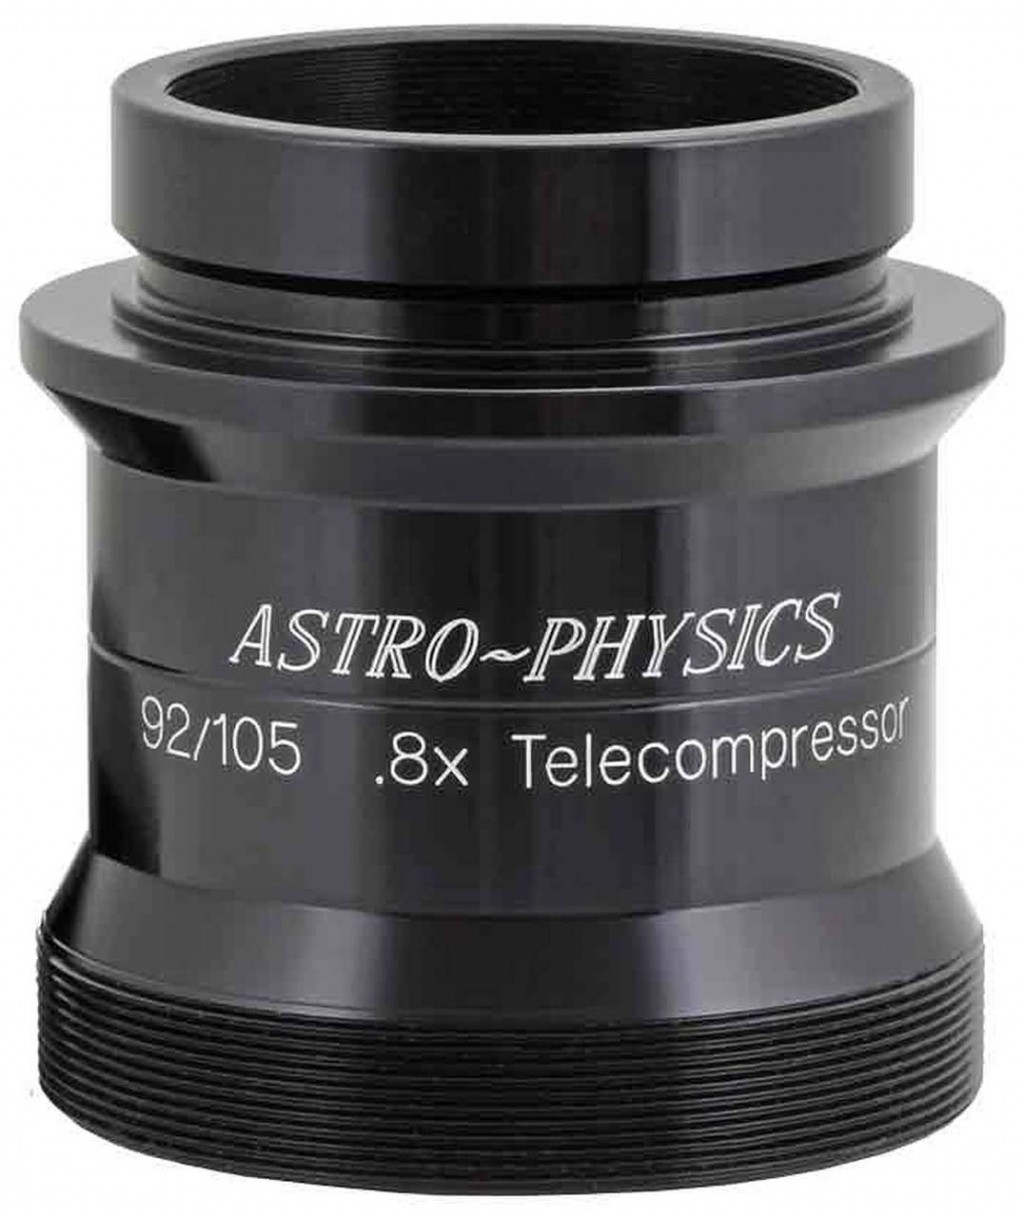 "Astro-Physics 0.8x CCD Telecompressor for 92mm Stowaway and 105mm Traveler. Requires 2.5"" DoveLoc End Cap that comes with 92mm F6.65 Stowaway or EC2725 for Traveler"